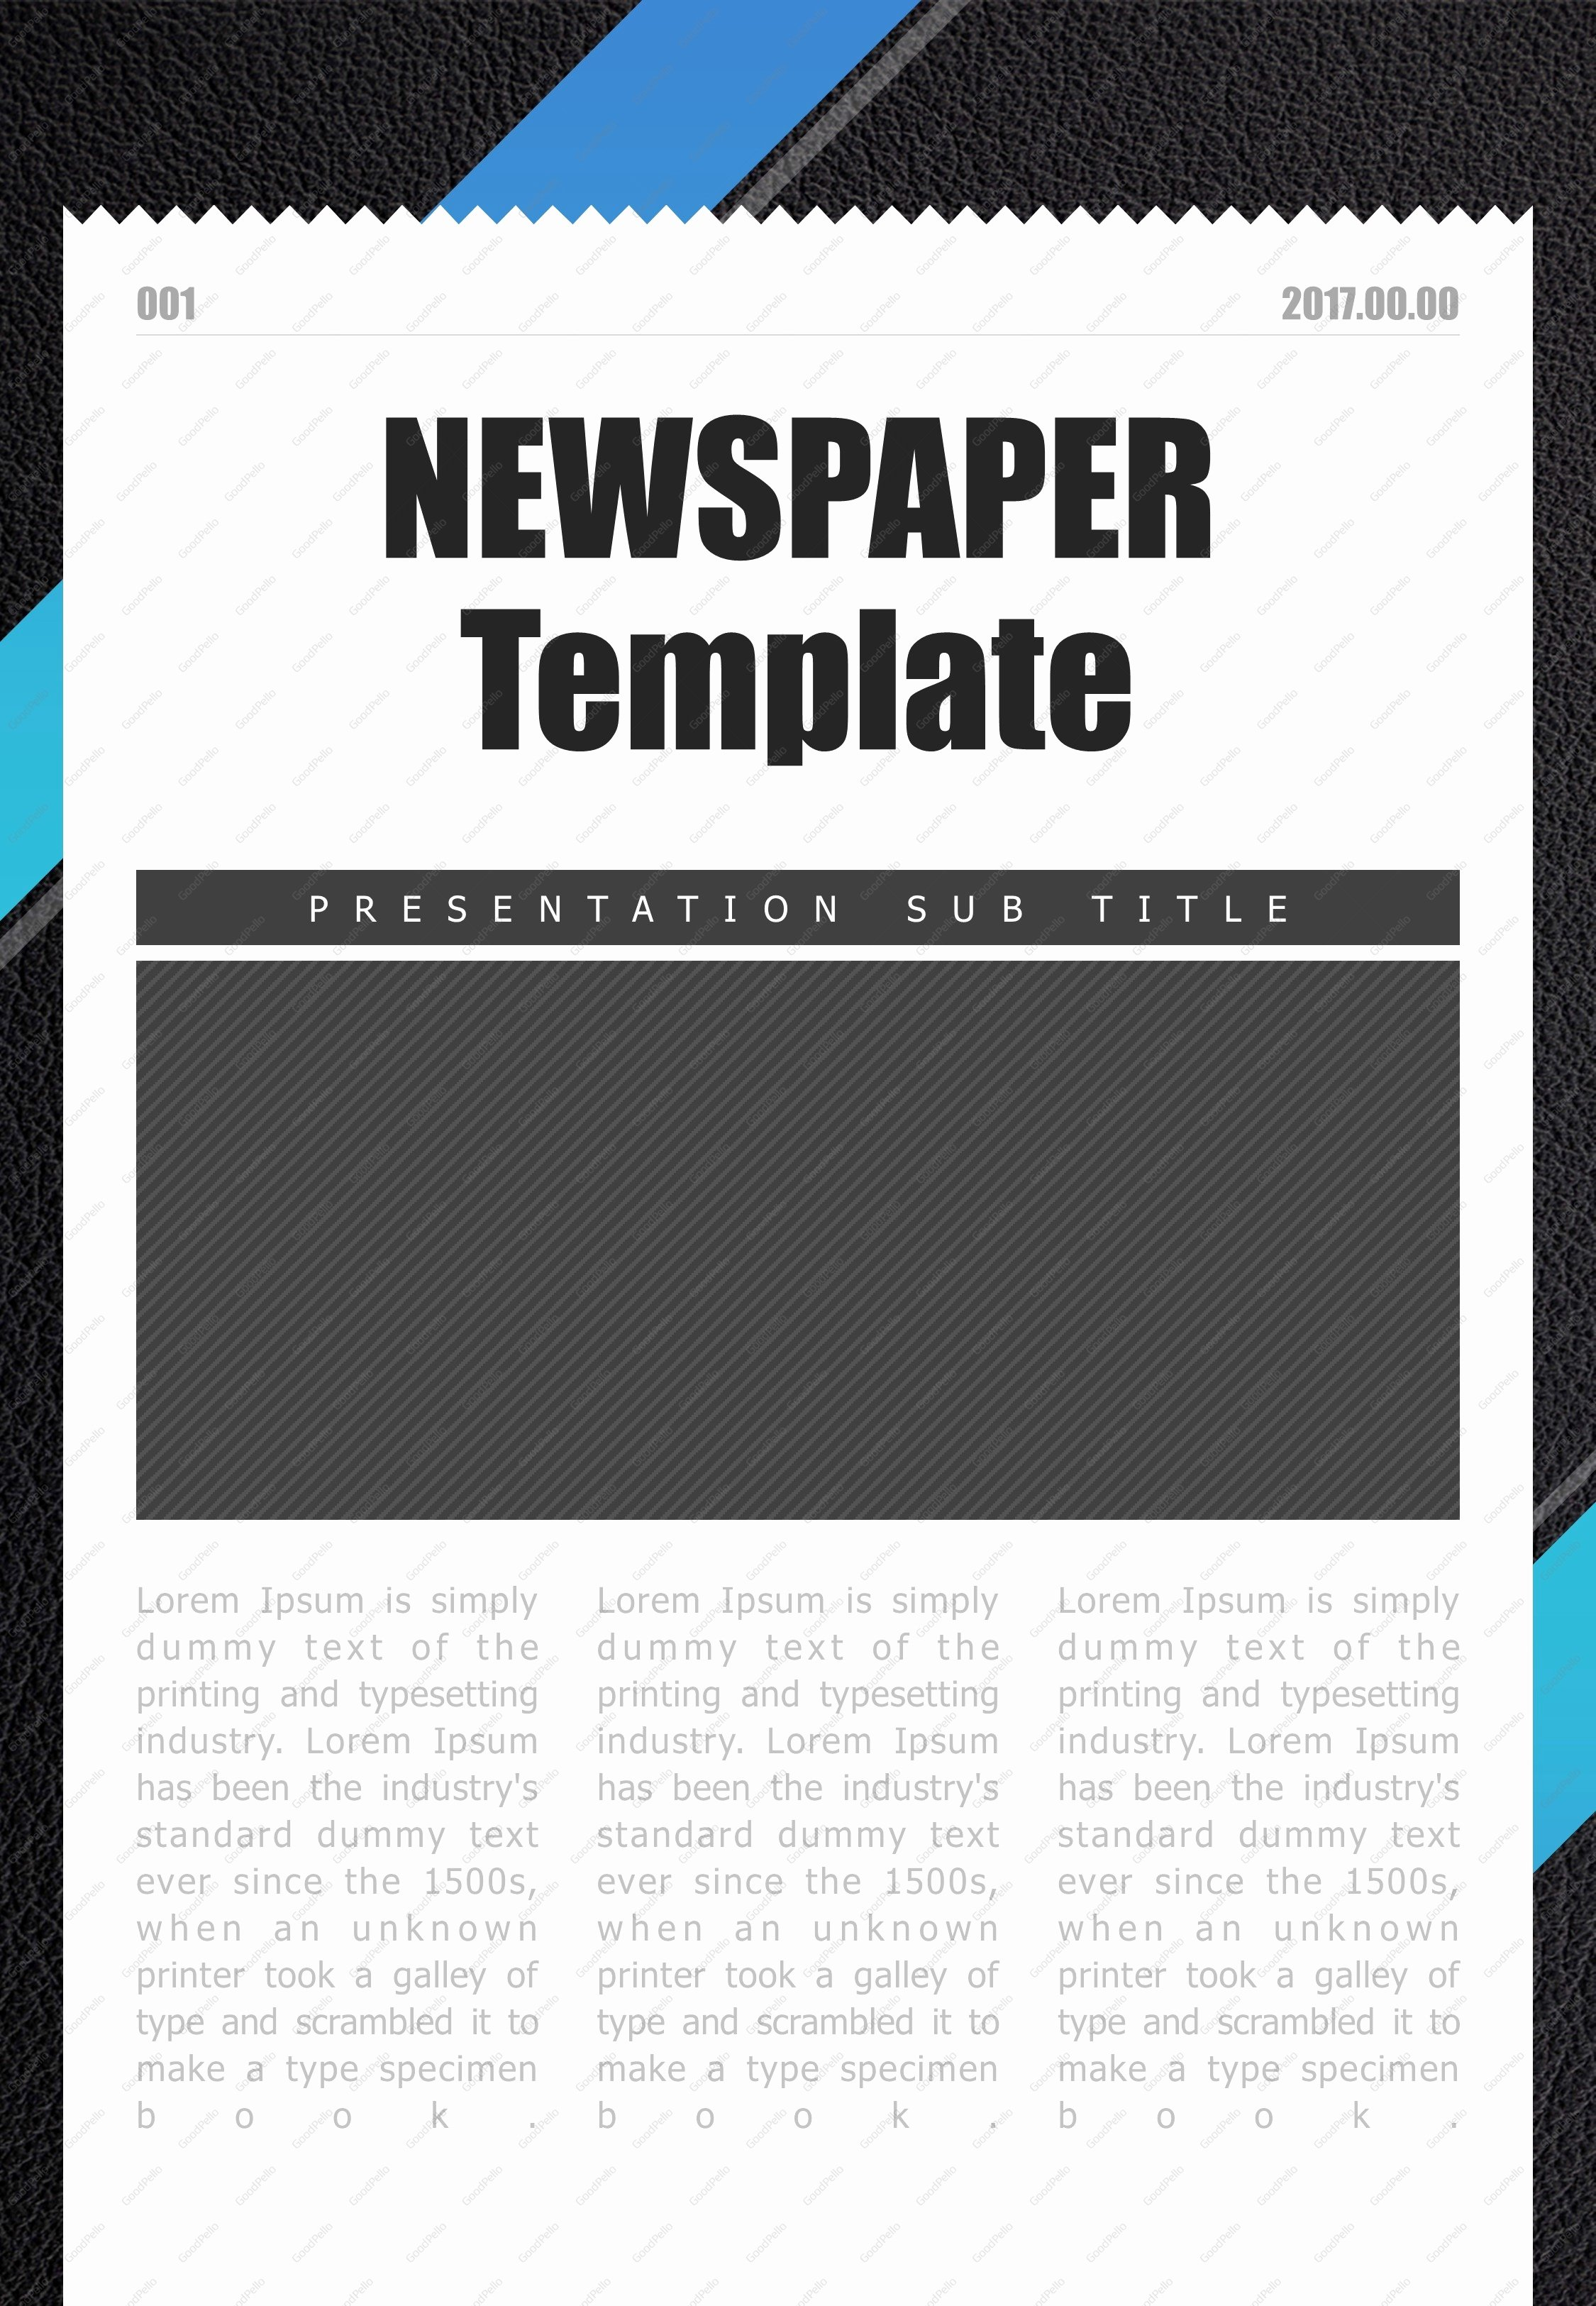 Newspaper Template for Ppt Inspirational Newspaper Powerpoint Template Design Templates